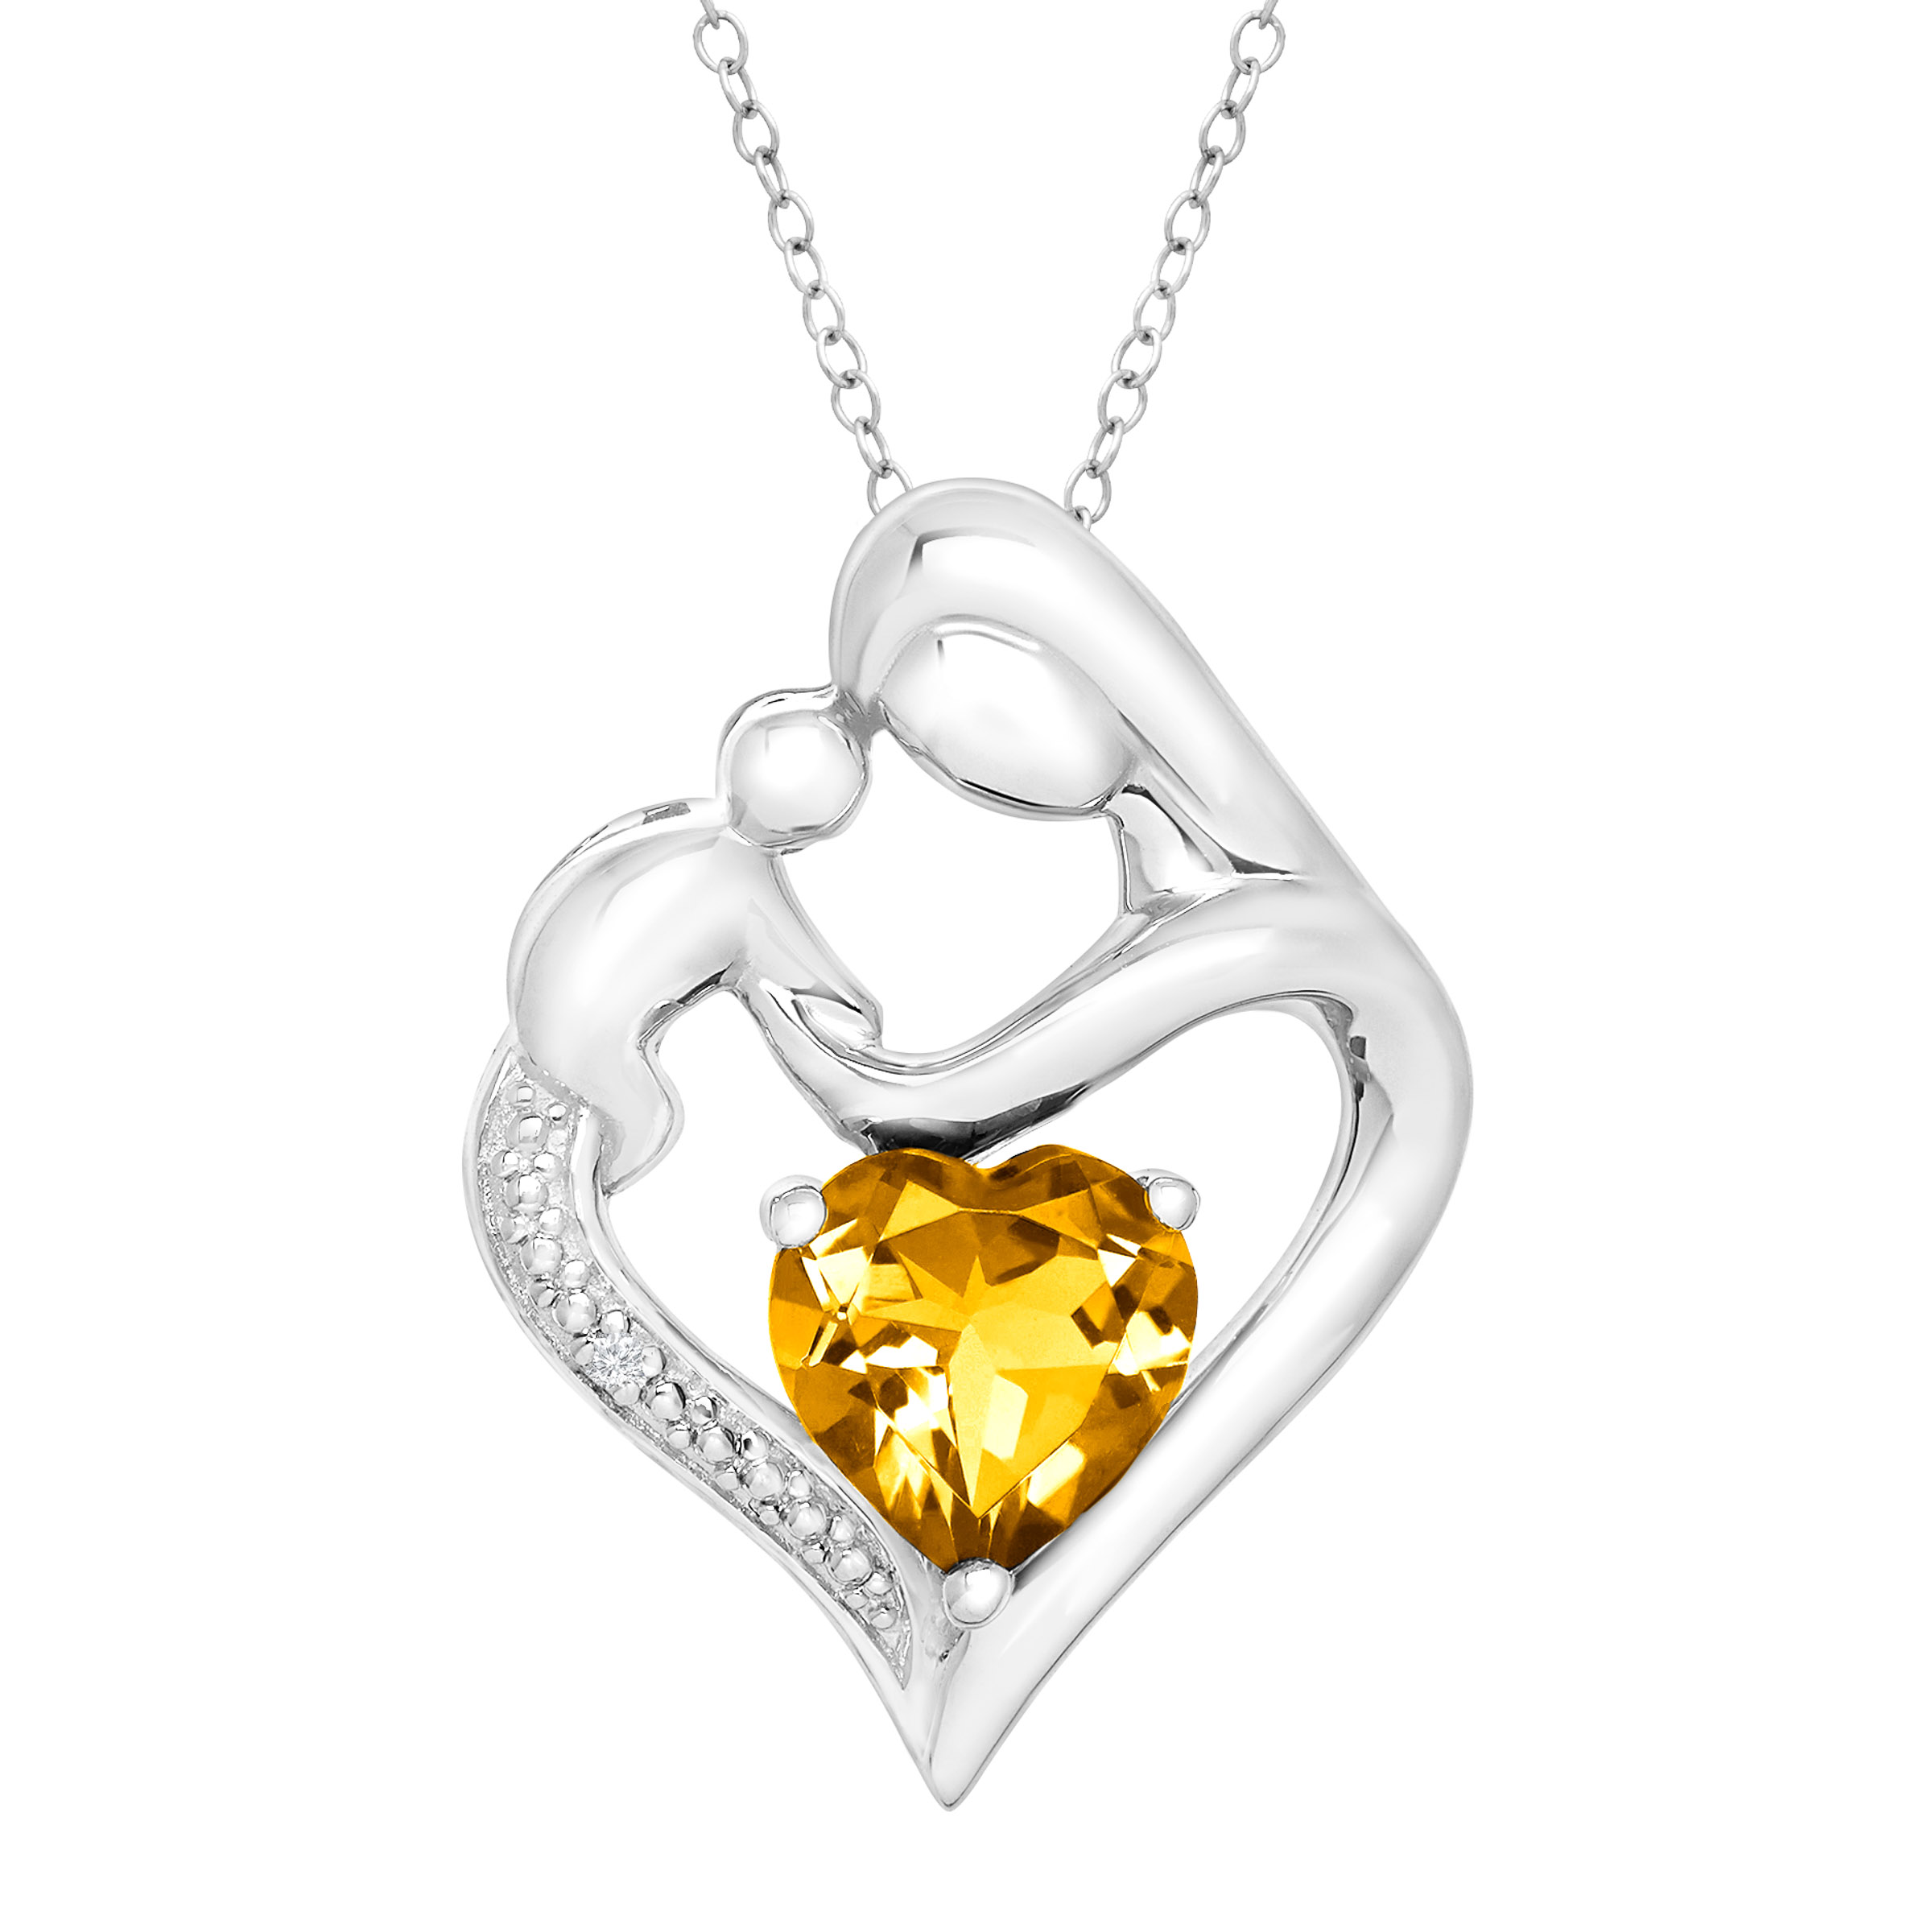 pendant necklace sterling citrine product merchandise silver service w